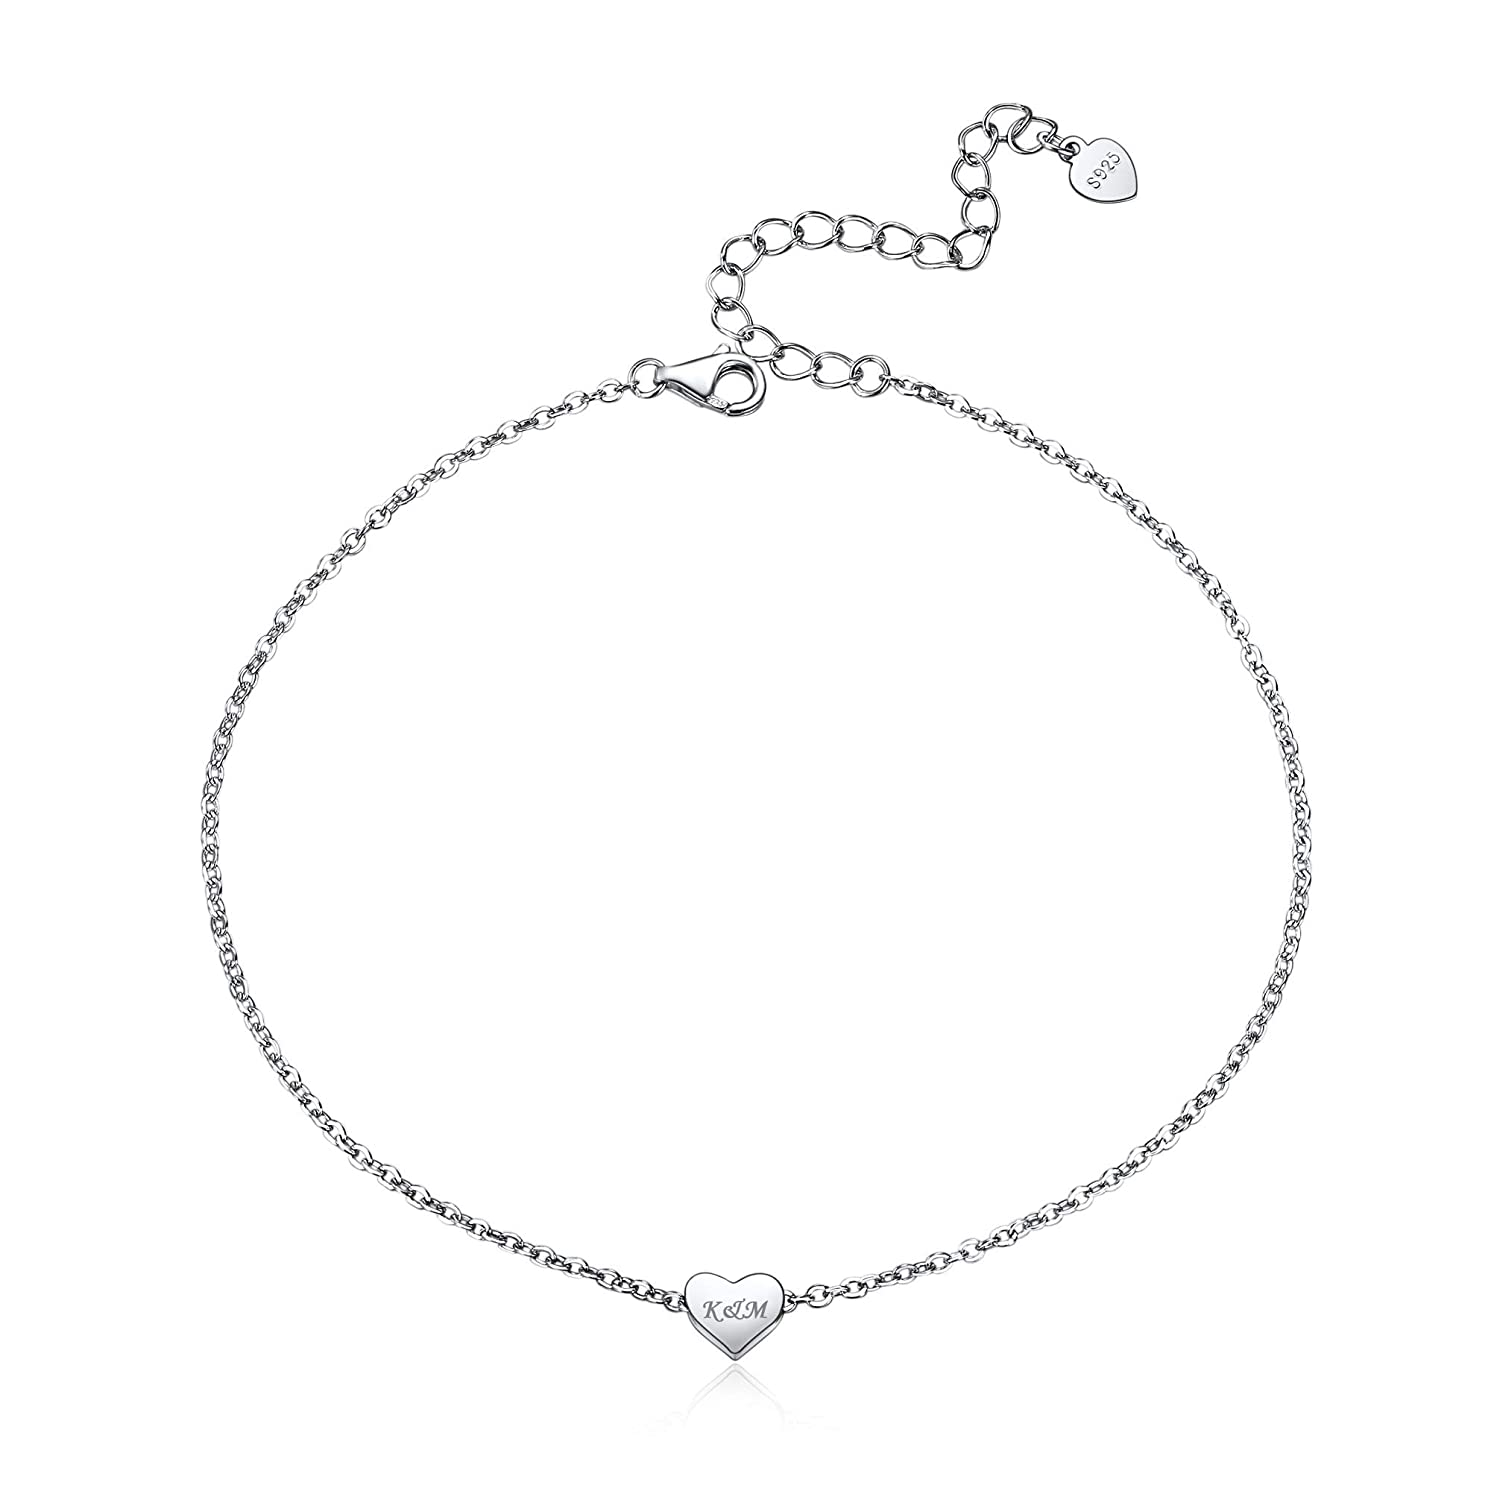 ChicSilver Personalized 925 Sterling Silver Minimalist Heart Love/Star of David Anklet Bracelet, Custom Couple/Lover Name Engravable Jewelry for Women Girls